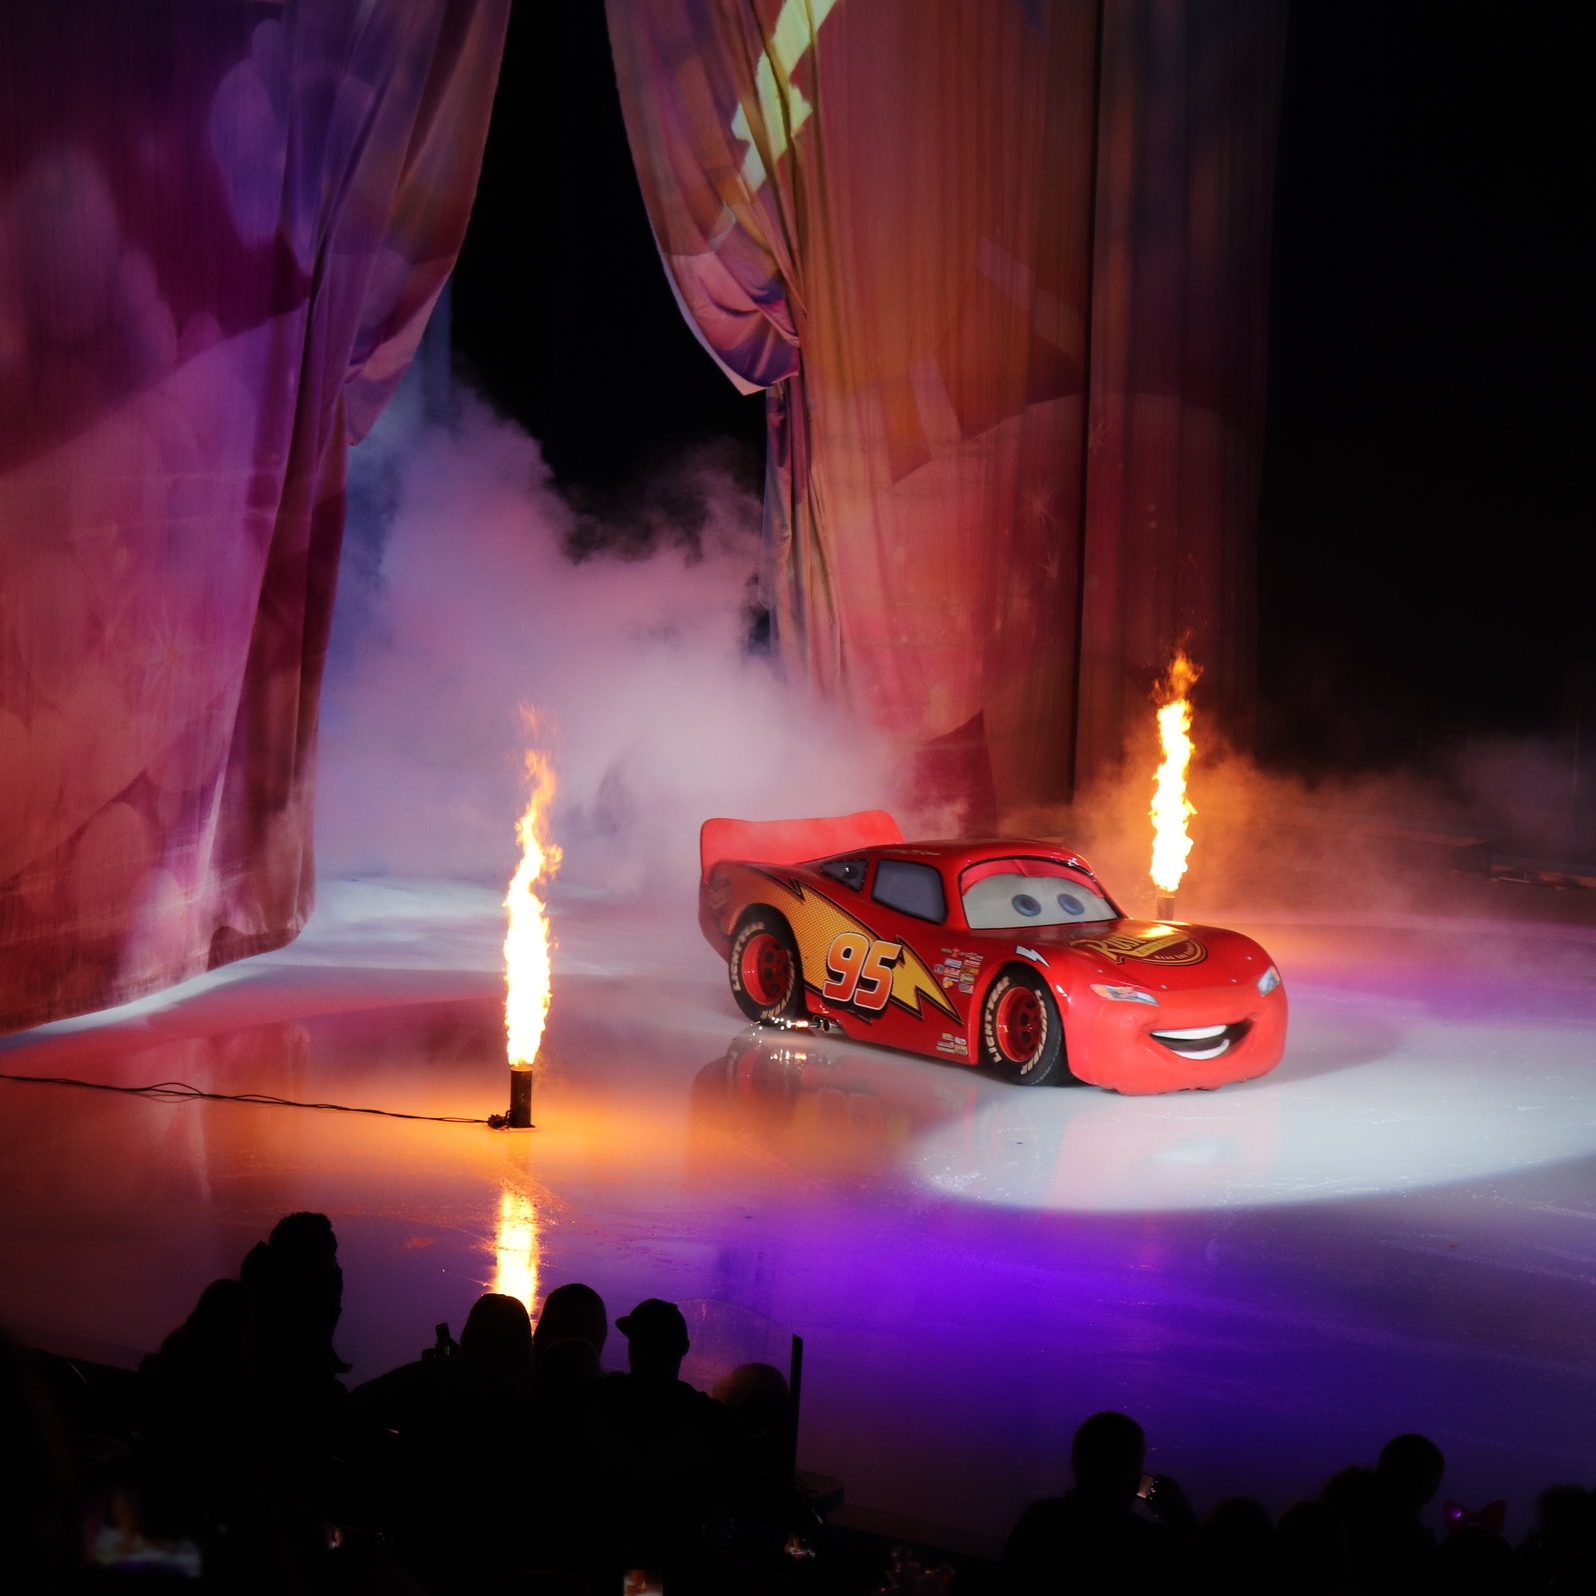 """""""Kachow"""" has more punch with some flames!"""